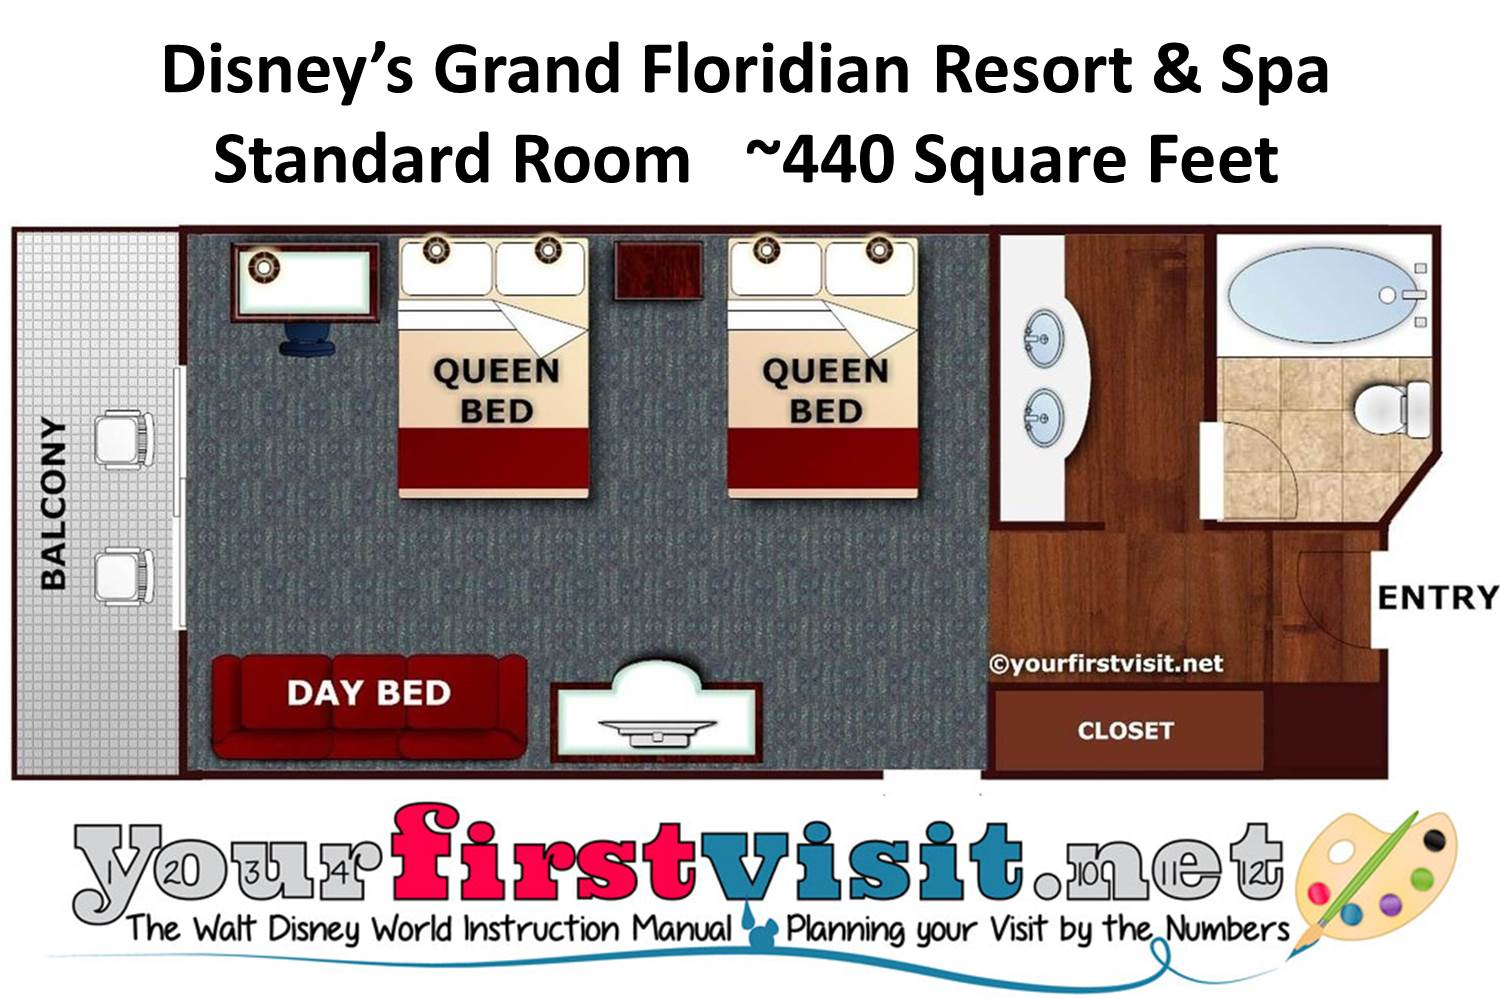 the deluxe resorts at walt disney world yourfirstvisit net summer breeze floorplan by grand floridian builders